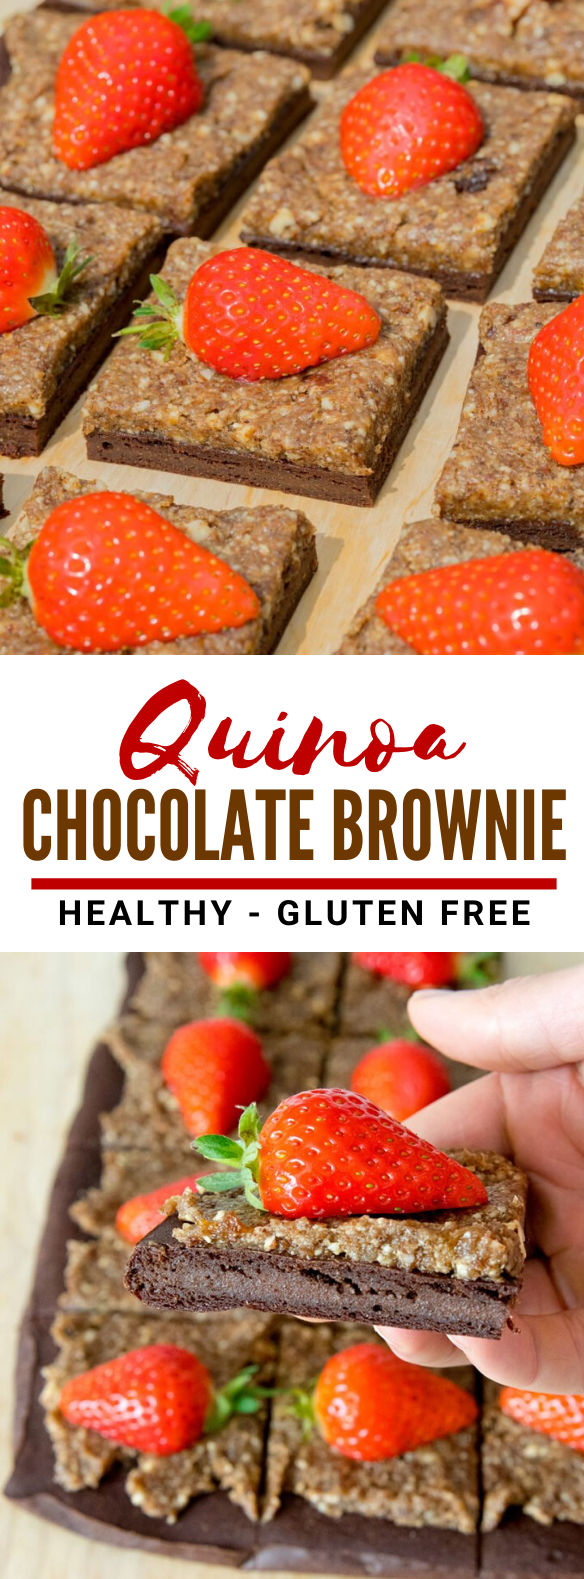 QUINOA CHOCOLATE BROWNIE – 4 INGREDIENTS RECIPE #fooddiet #glutenfree